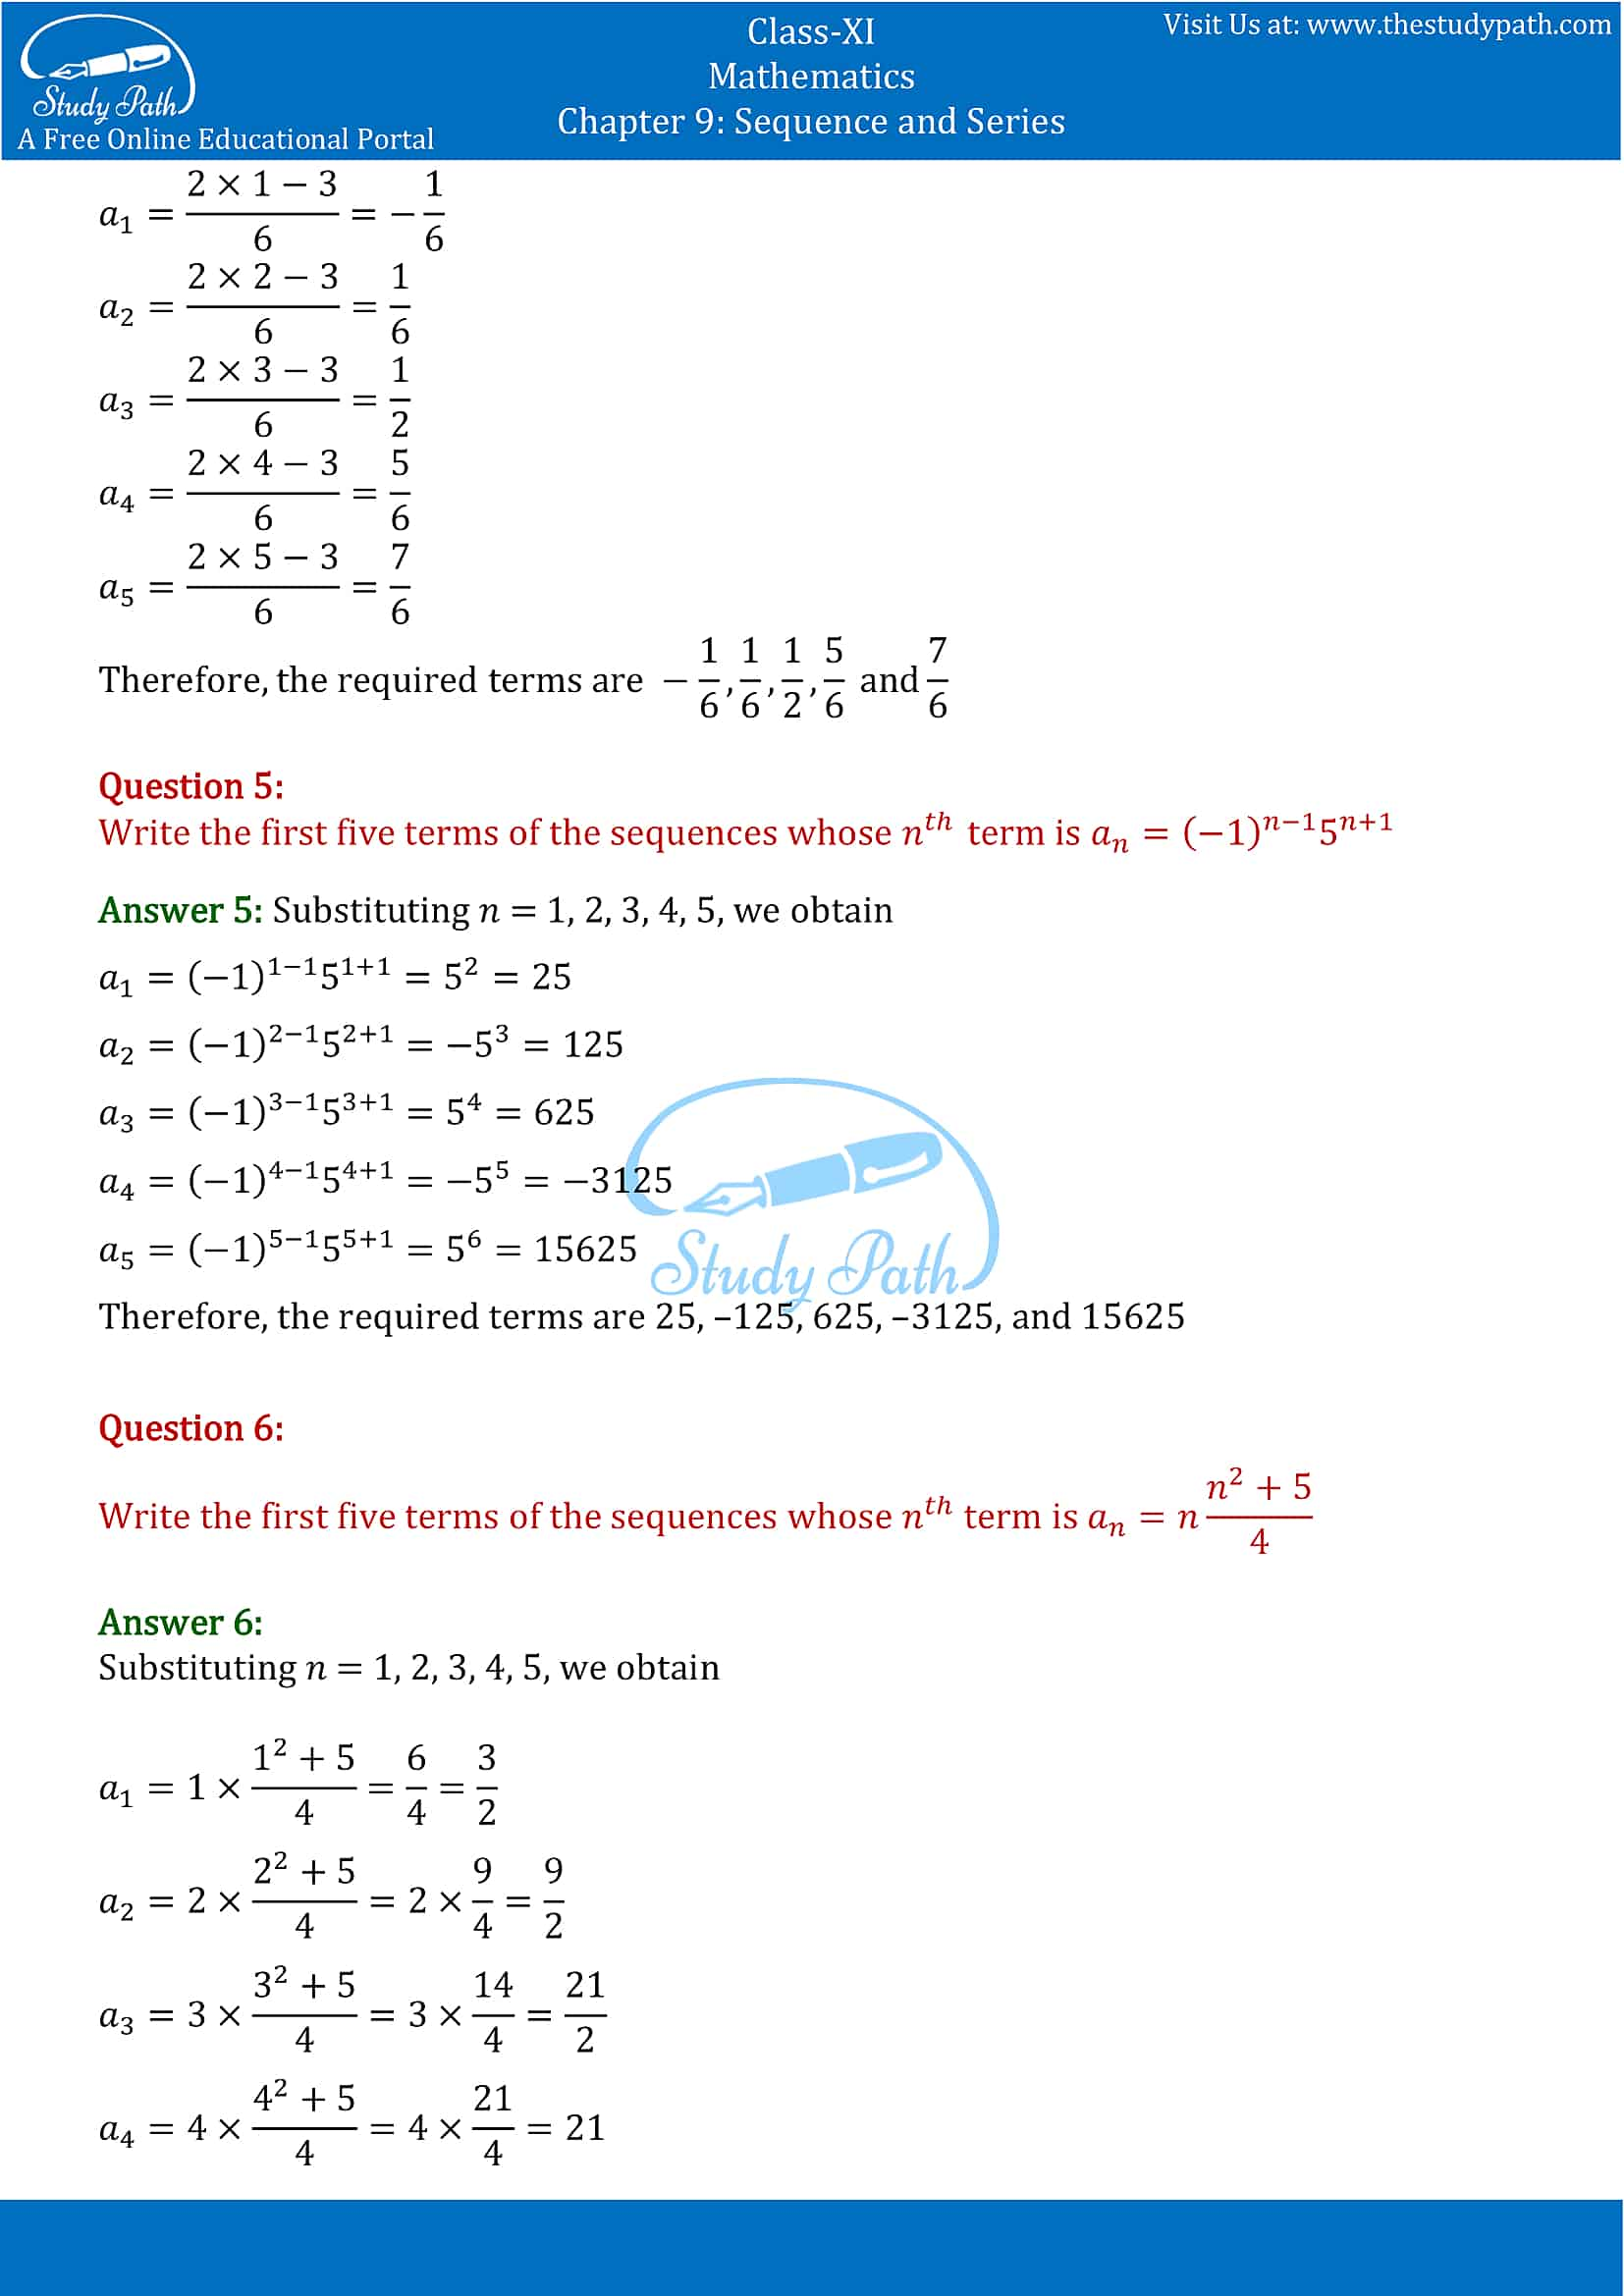 NCERT Solutions for Class 11 Maths chapter 9 Sequence and Series Part-2